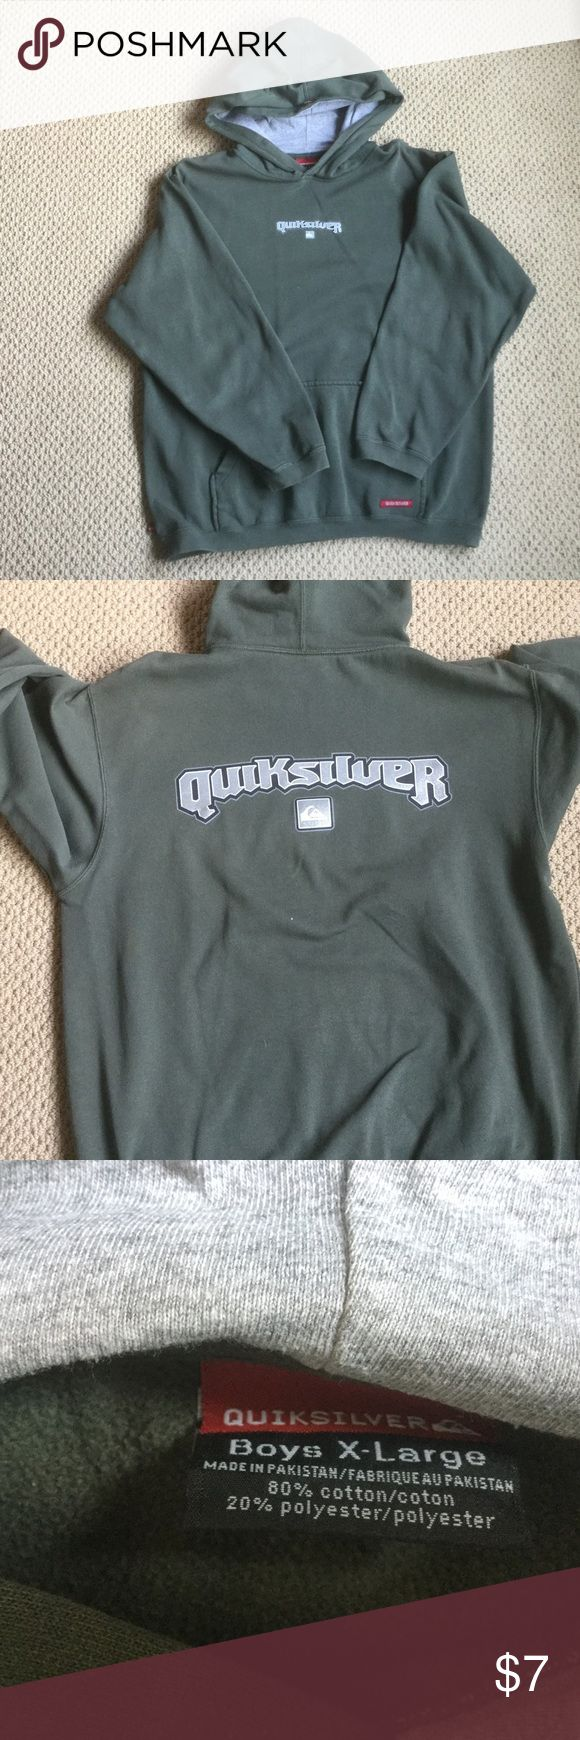 Boy's XL pullover In good condition Quiksilver sweatshirt.  Boy's size XL.  No tear or stain. Quiksilver Shirts & Tops Sweatshirts & Hoodies